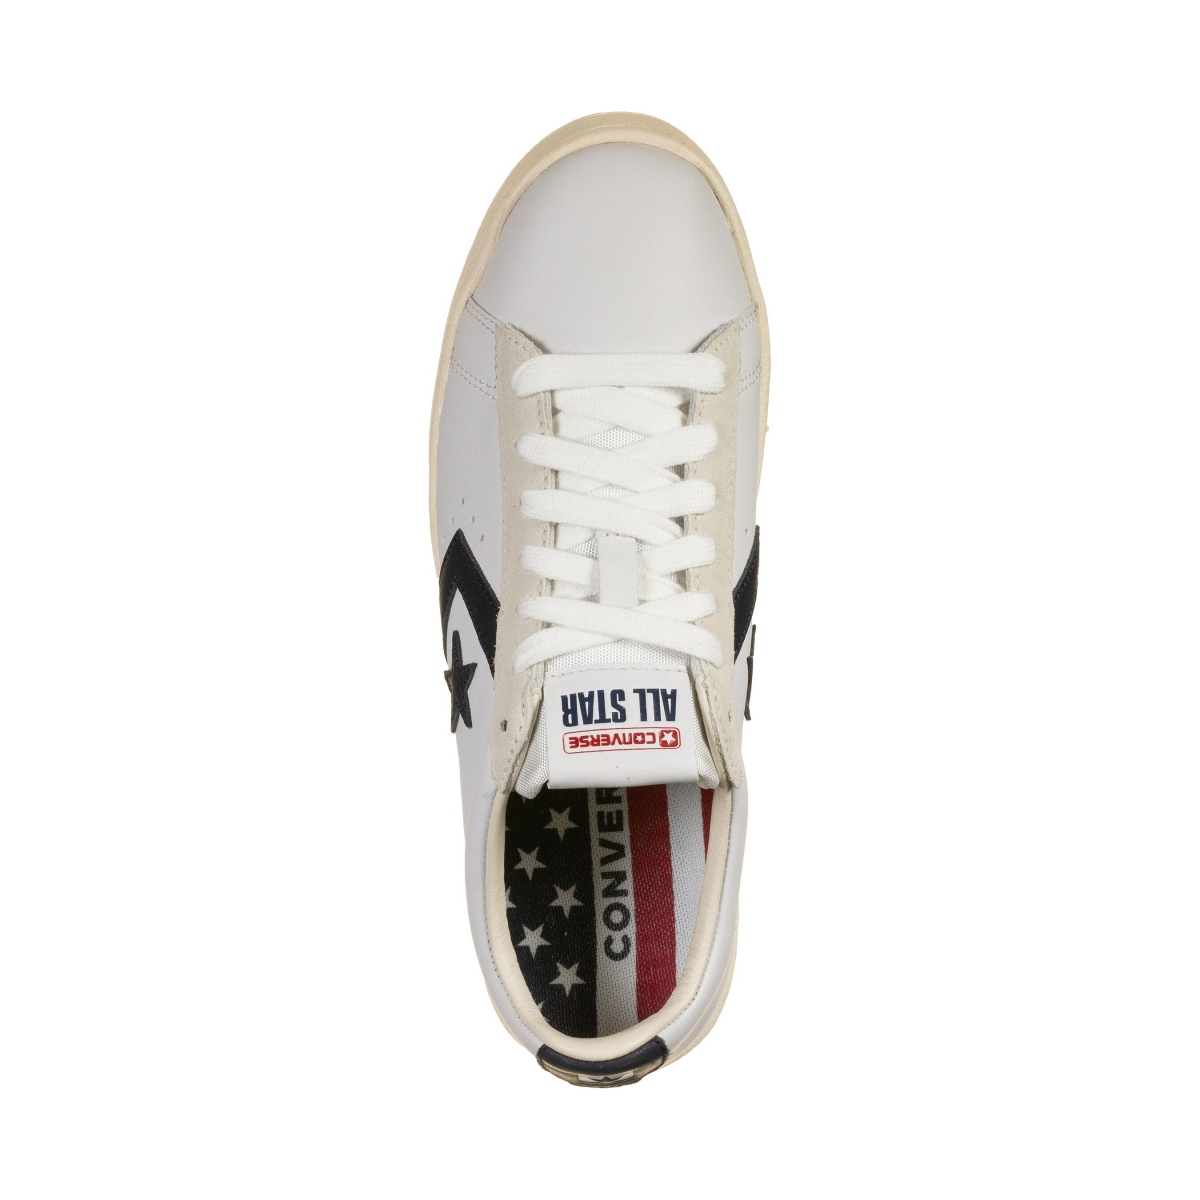 Mens shoes Converse Pro Leather OG Mid White/ Obsindian